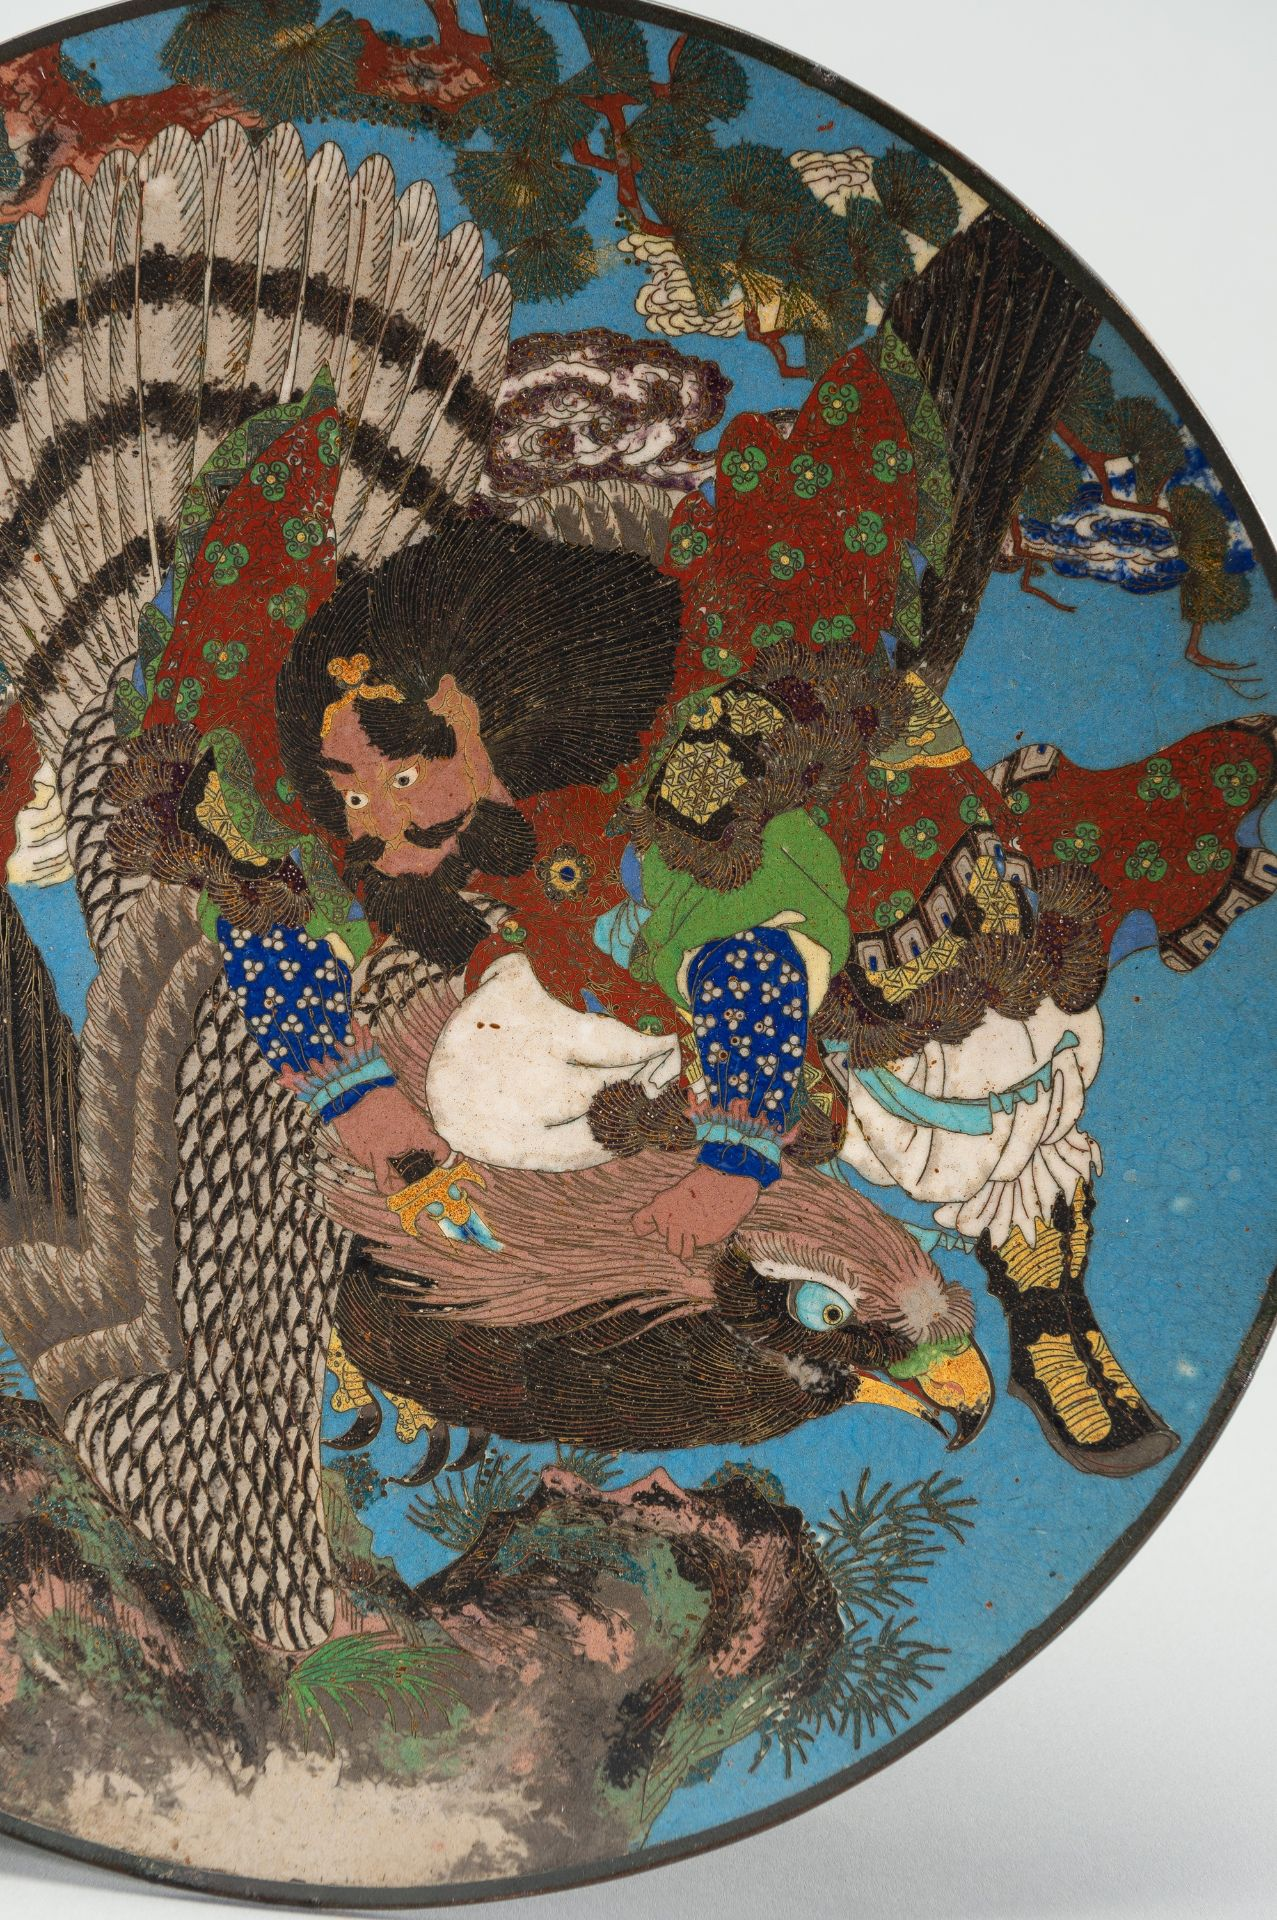 A LARGE CLOISONNE ENAMEL PLATE WITH FIGURAL DECOR - Image 2 of 7